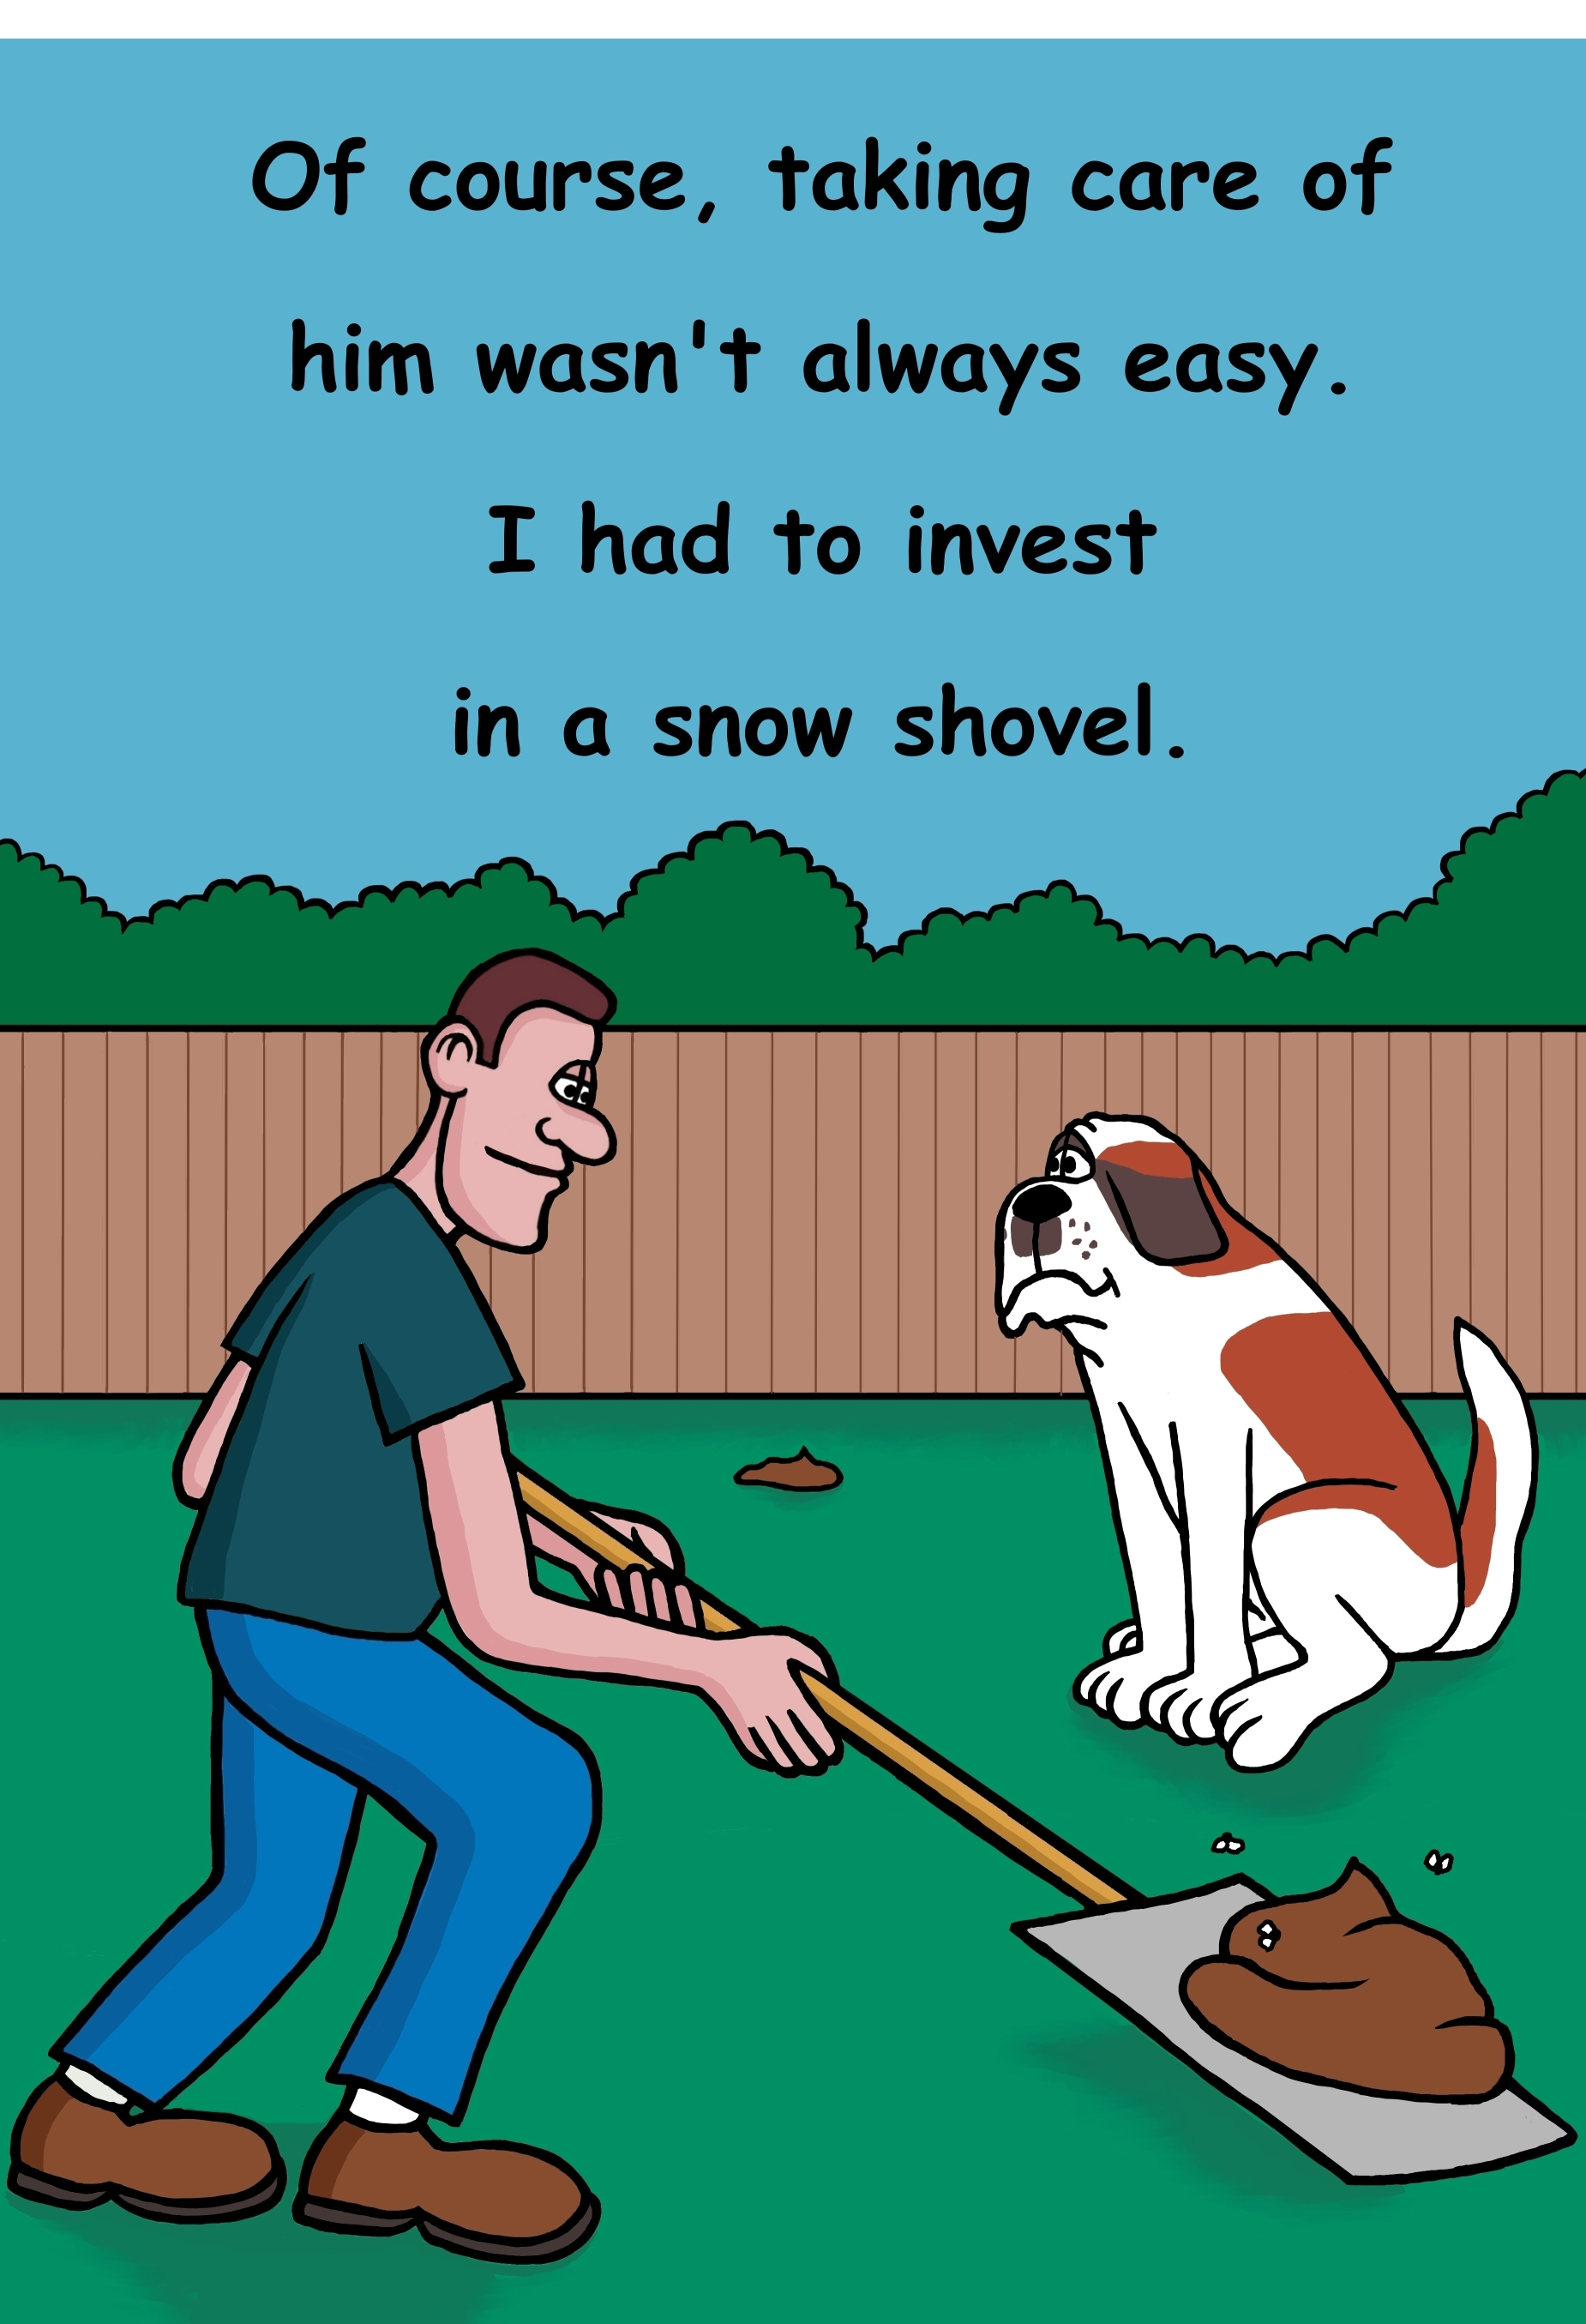 Of course, taking care of him wasn't easy. I had to invest in a snow shovel for his poops.